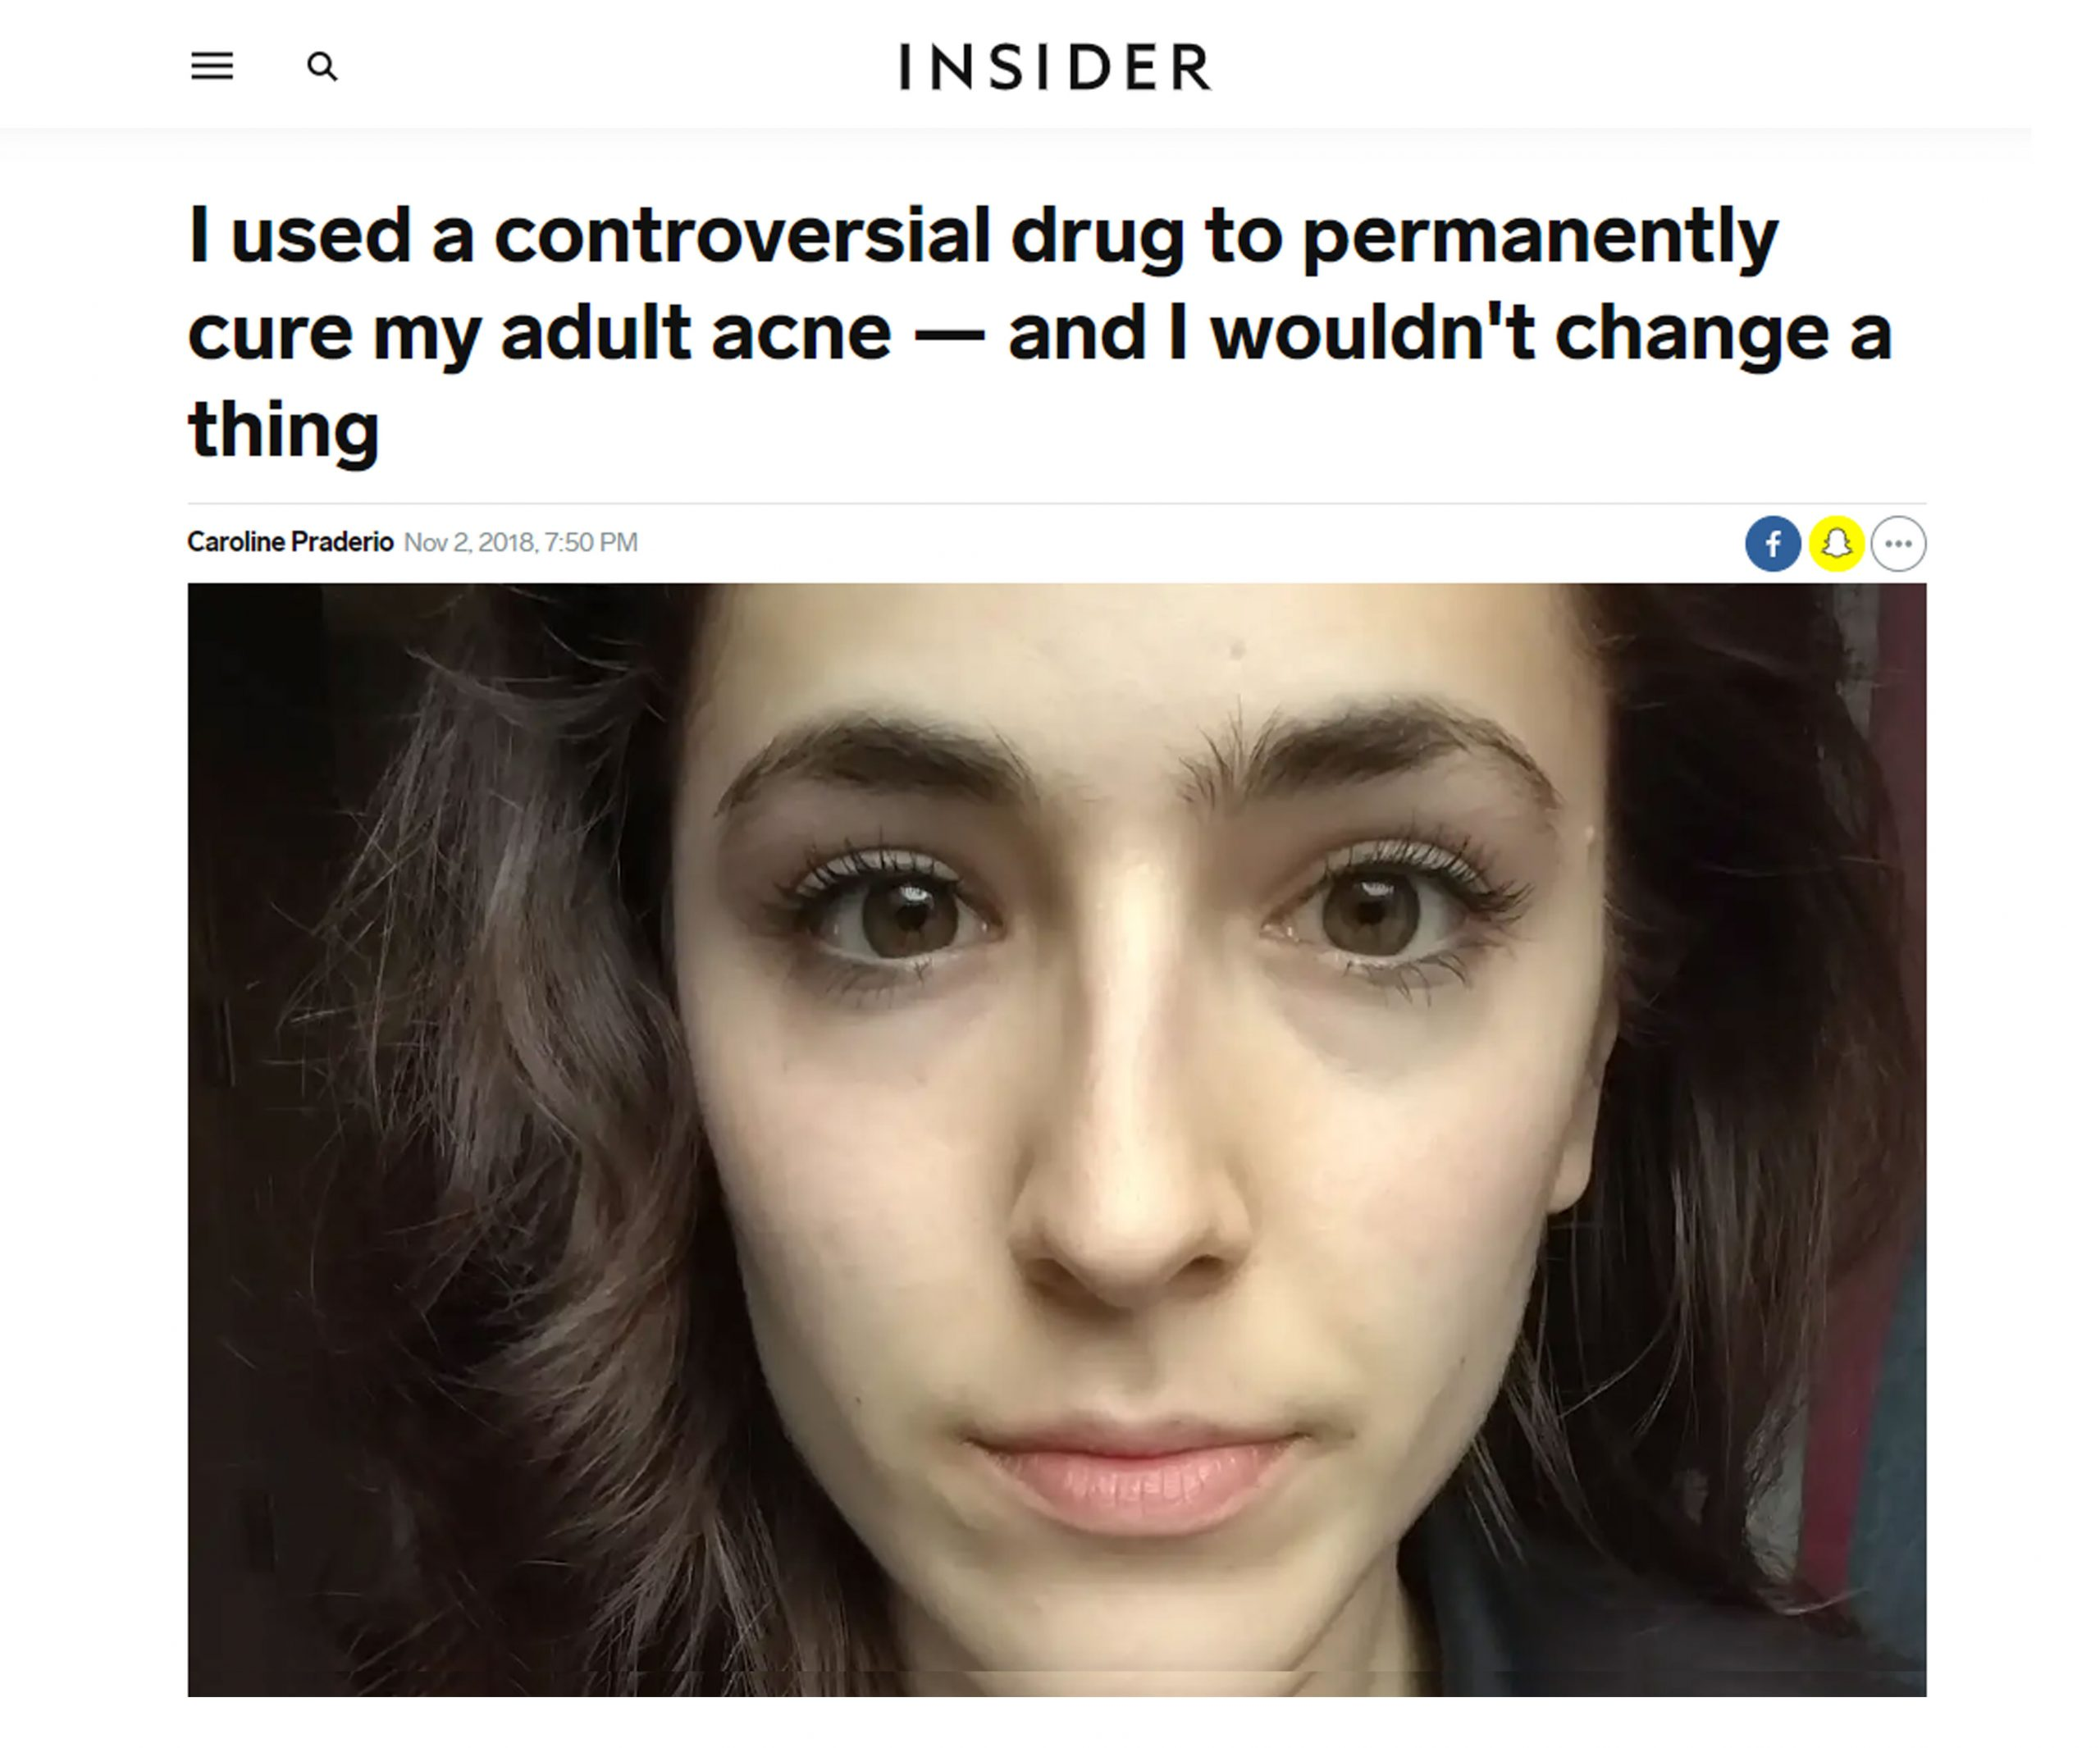 Is Accutane worth it? Personal before and after review of Accutane from Caroline Praderio.